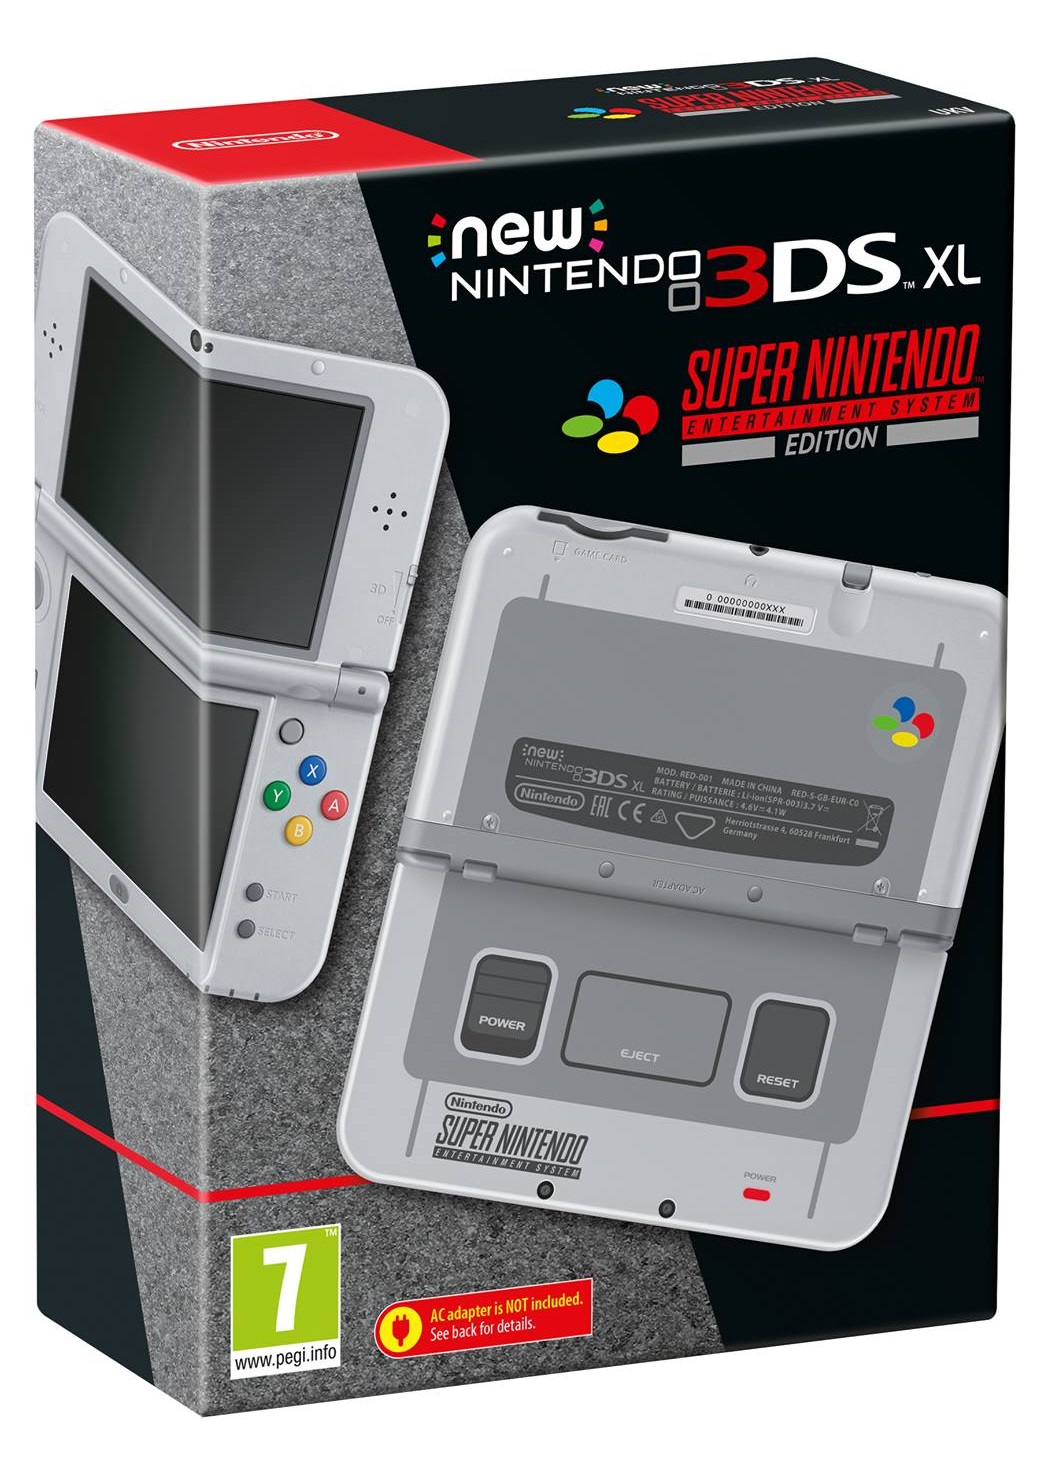 New Nintendo 3DS XL SNES (Super Nintendo) Edition